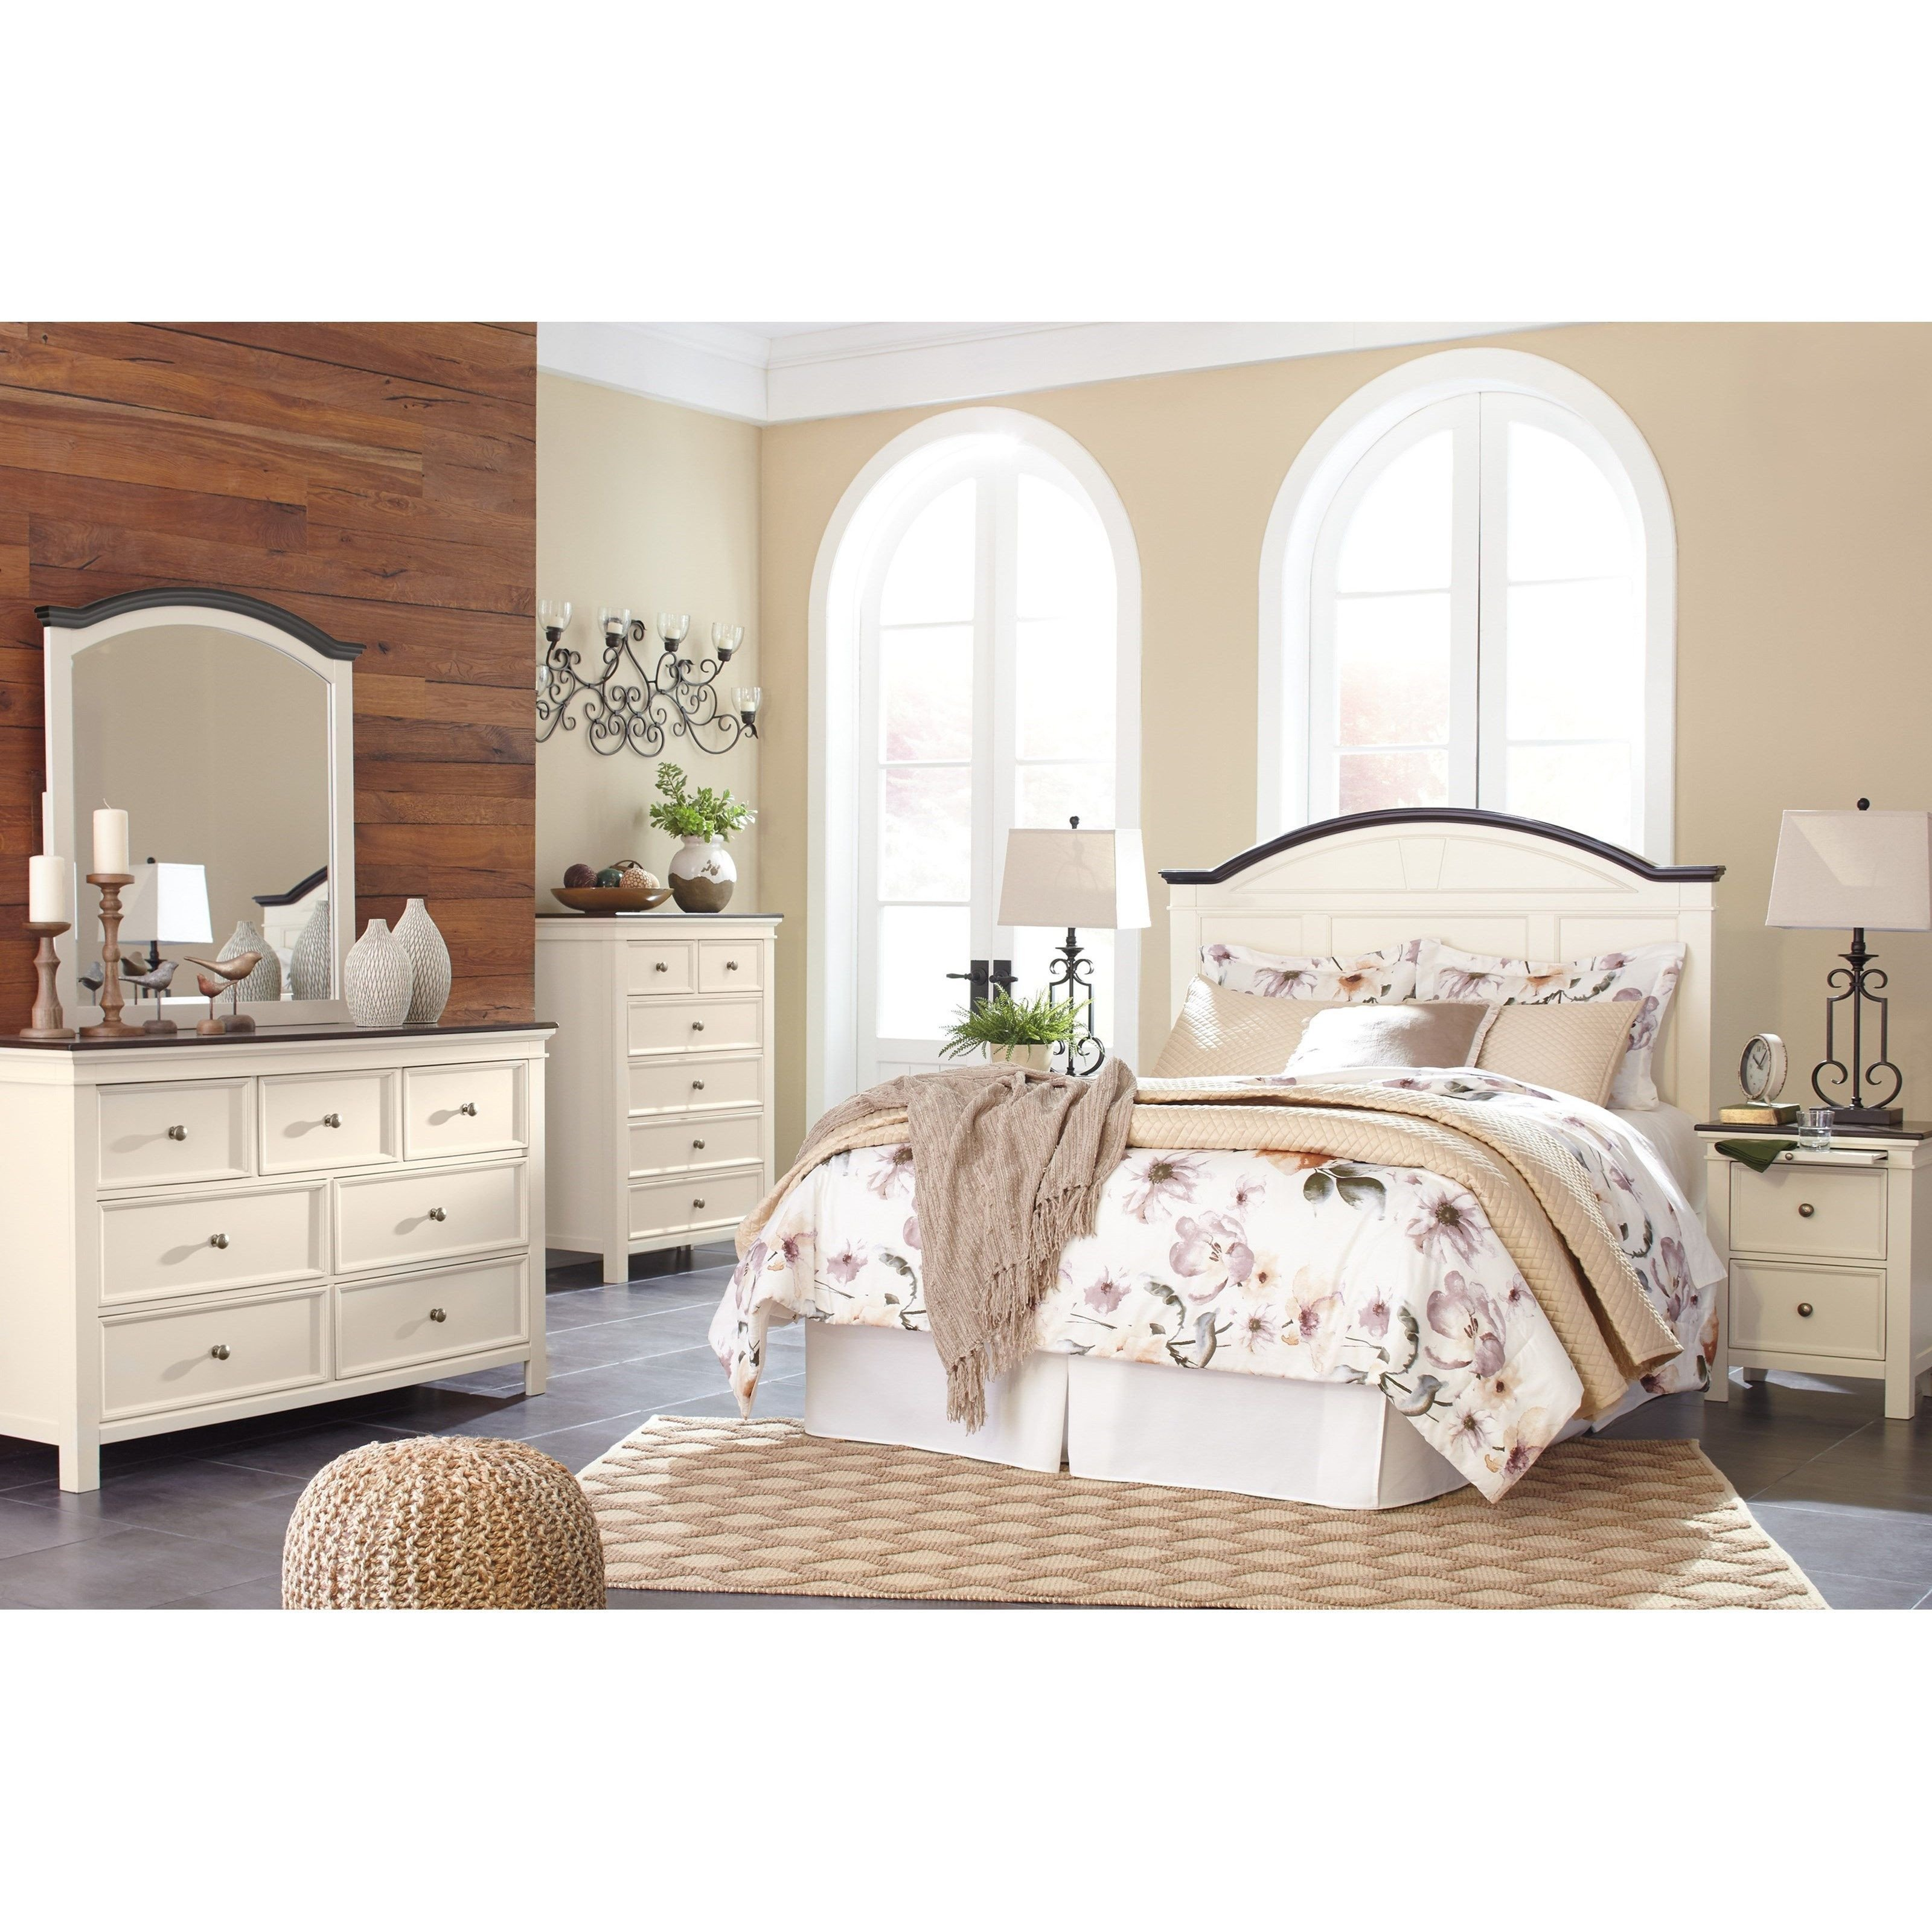 Ashley Bedroom Furniture Sale Awesome Woodanville Queen Bedroom Group by Signature Design by